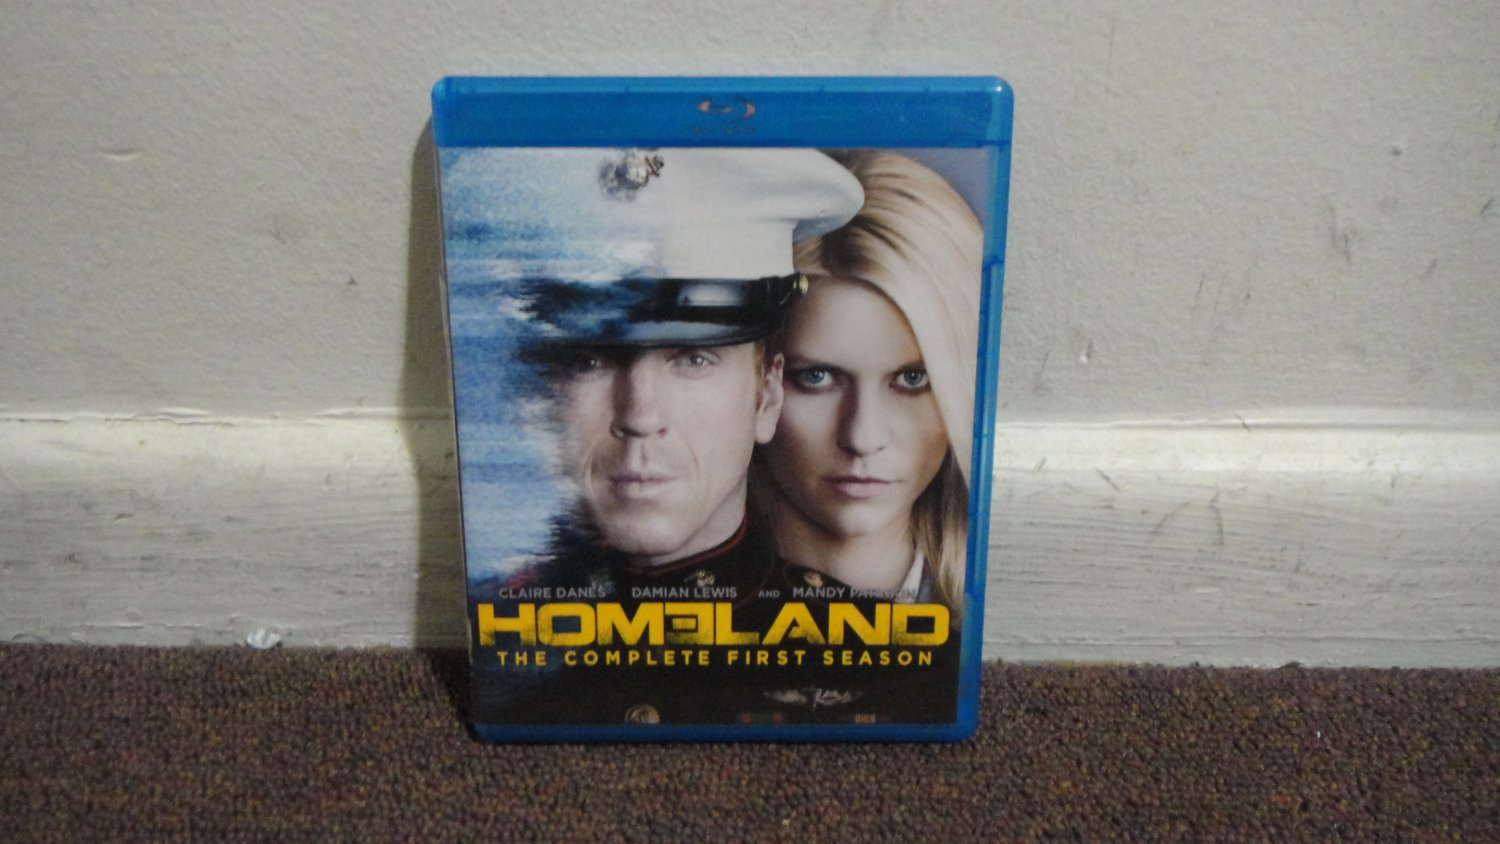 HOMELAND The Complete First Season Season 1 Blu Ray Missing Disk 3 LOOK